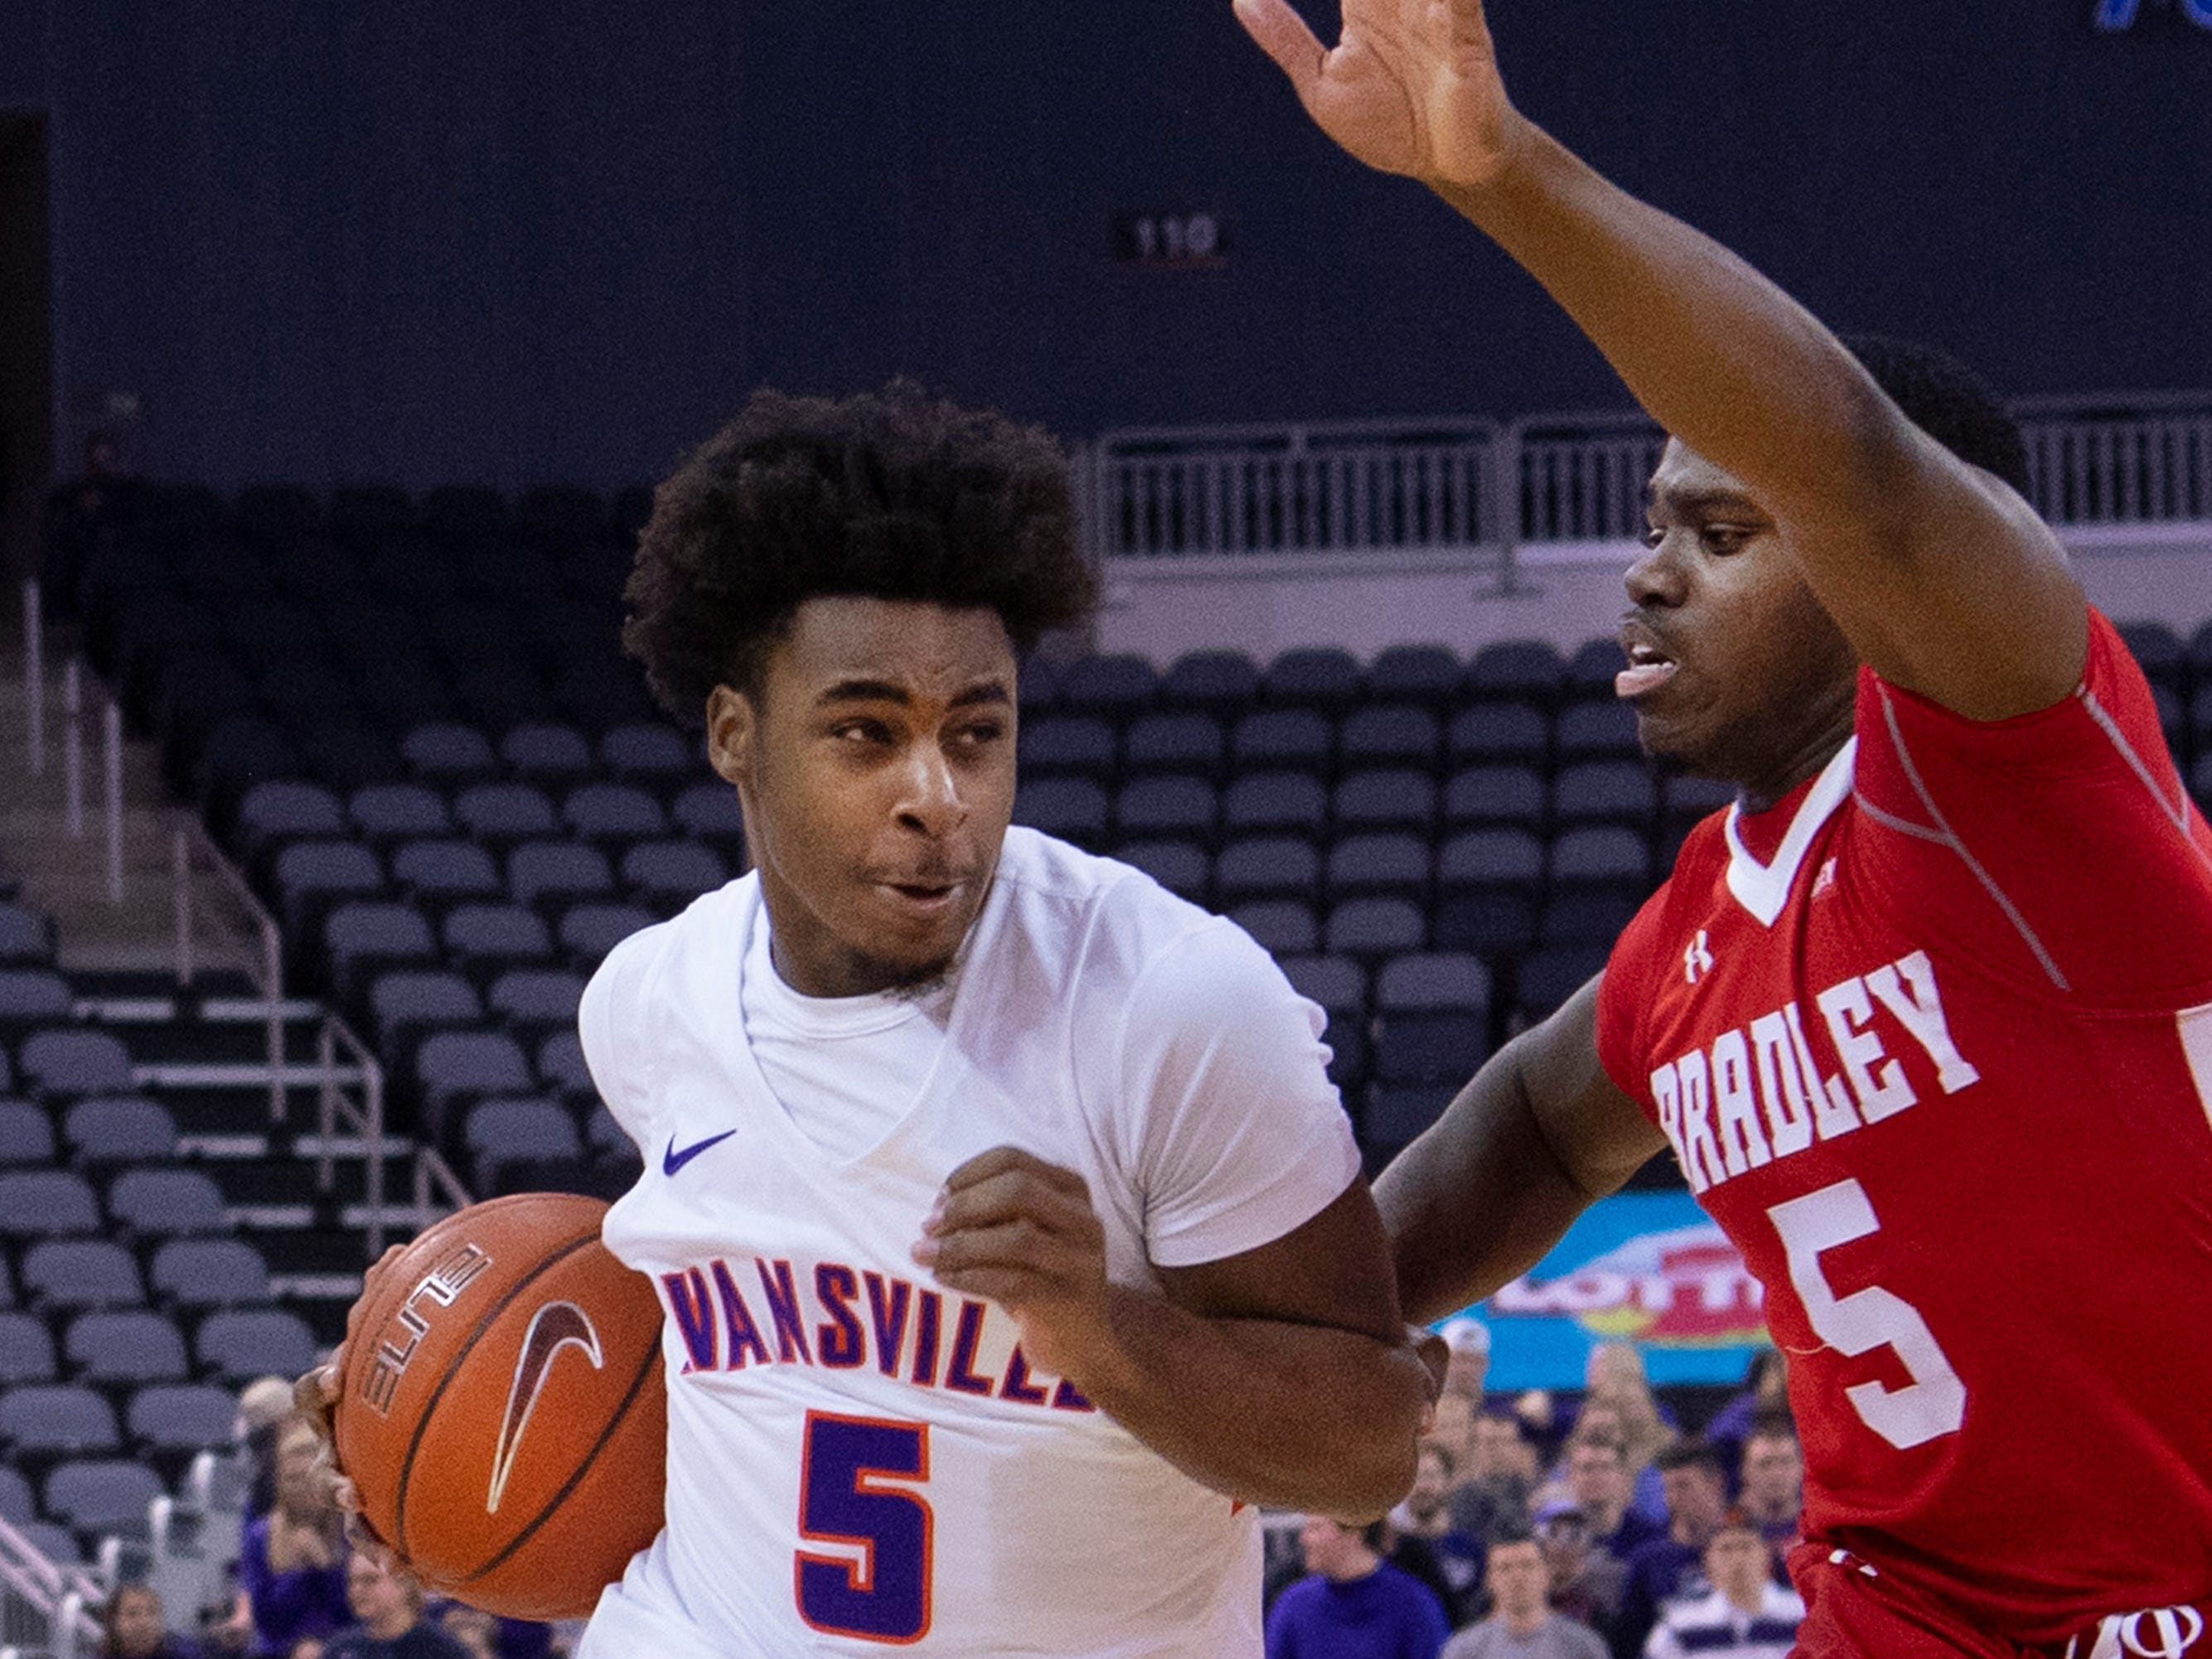 Evansville's Shamar Givance (5) drives past Bradley's Darrell Brown (5) during their game at the Ford Center Wednesday night.